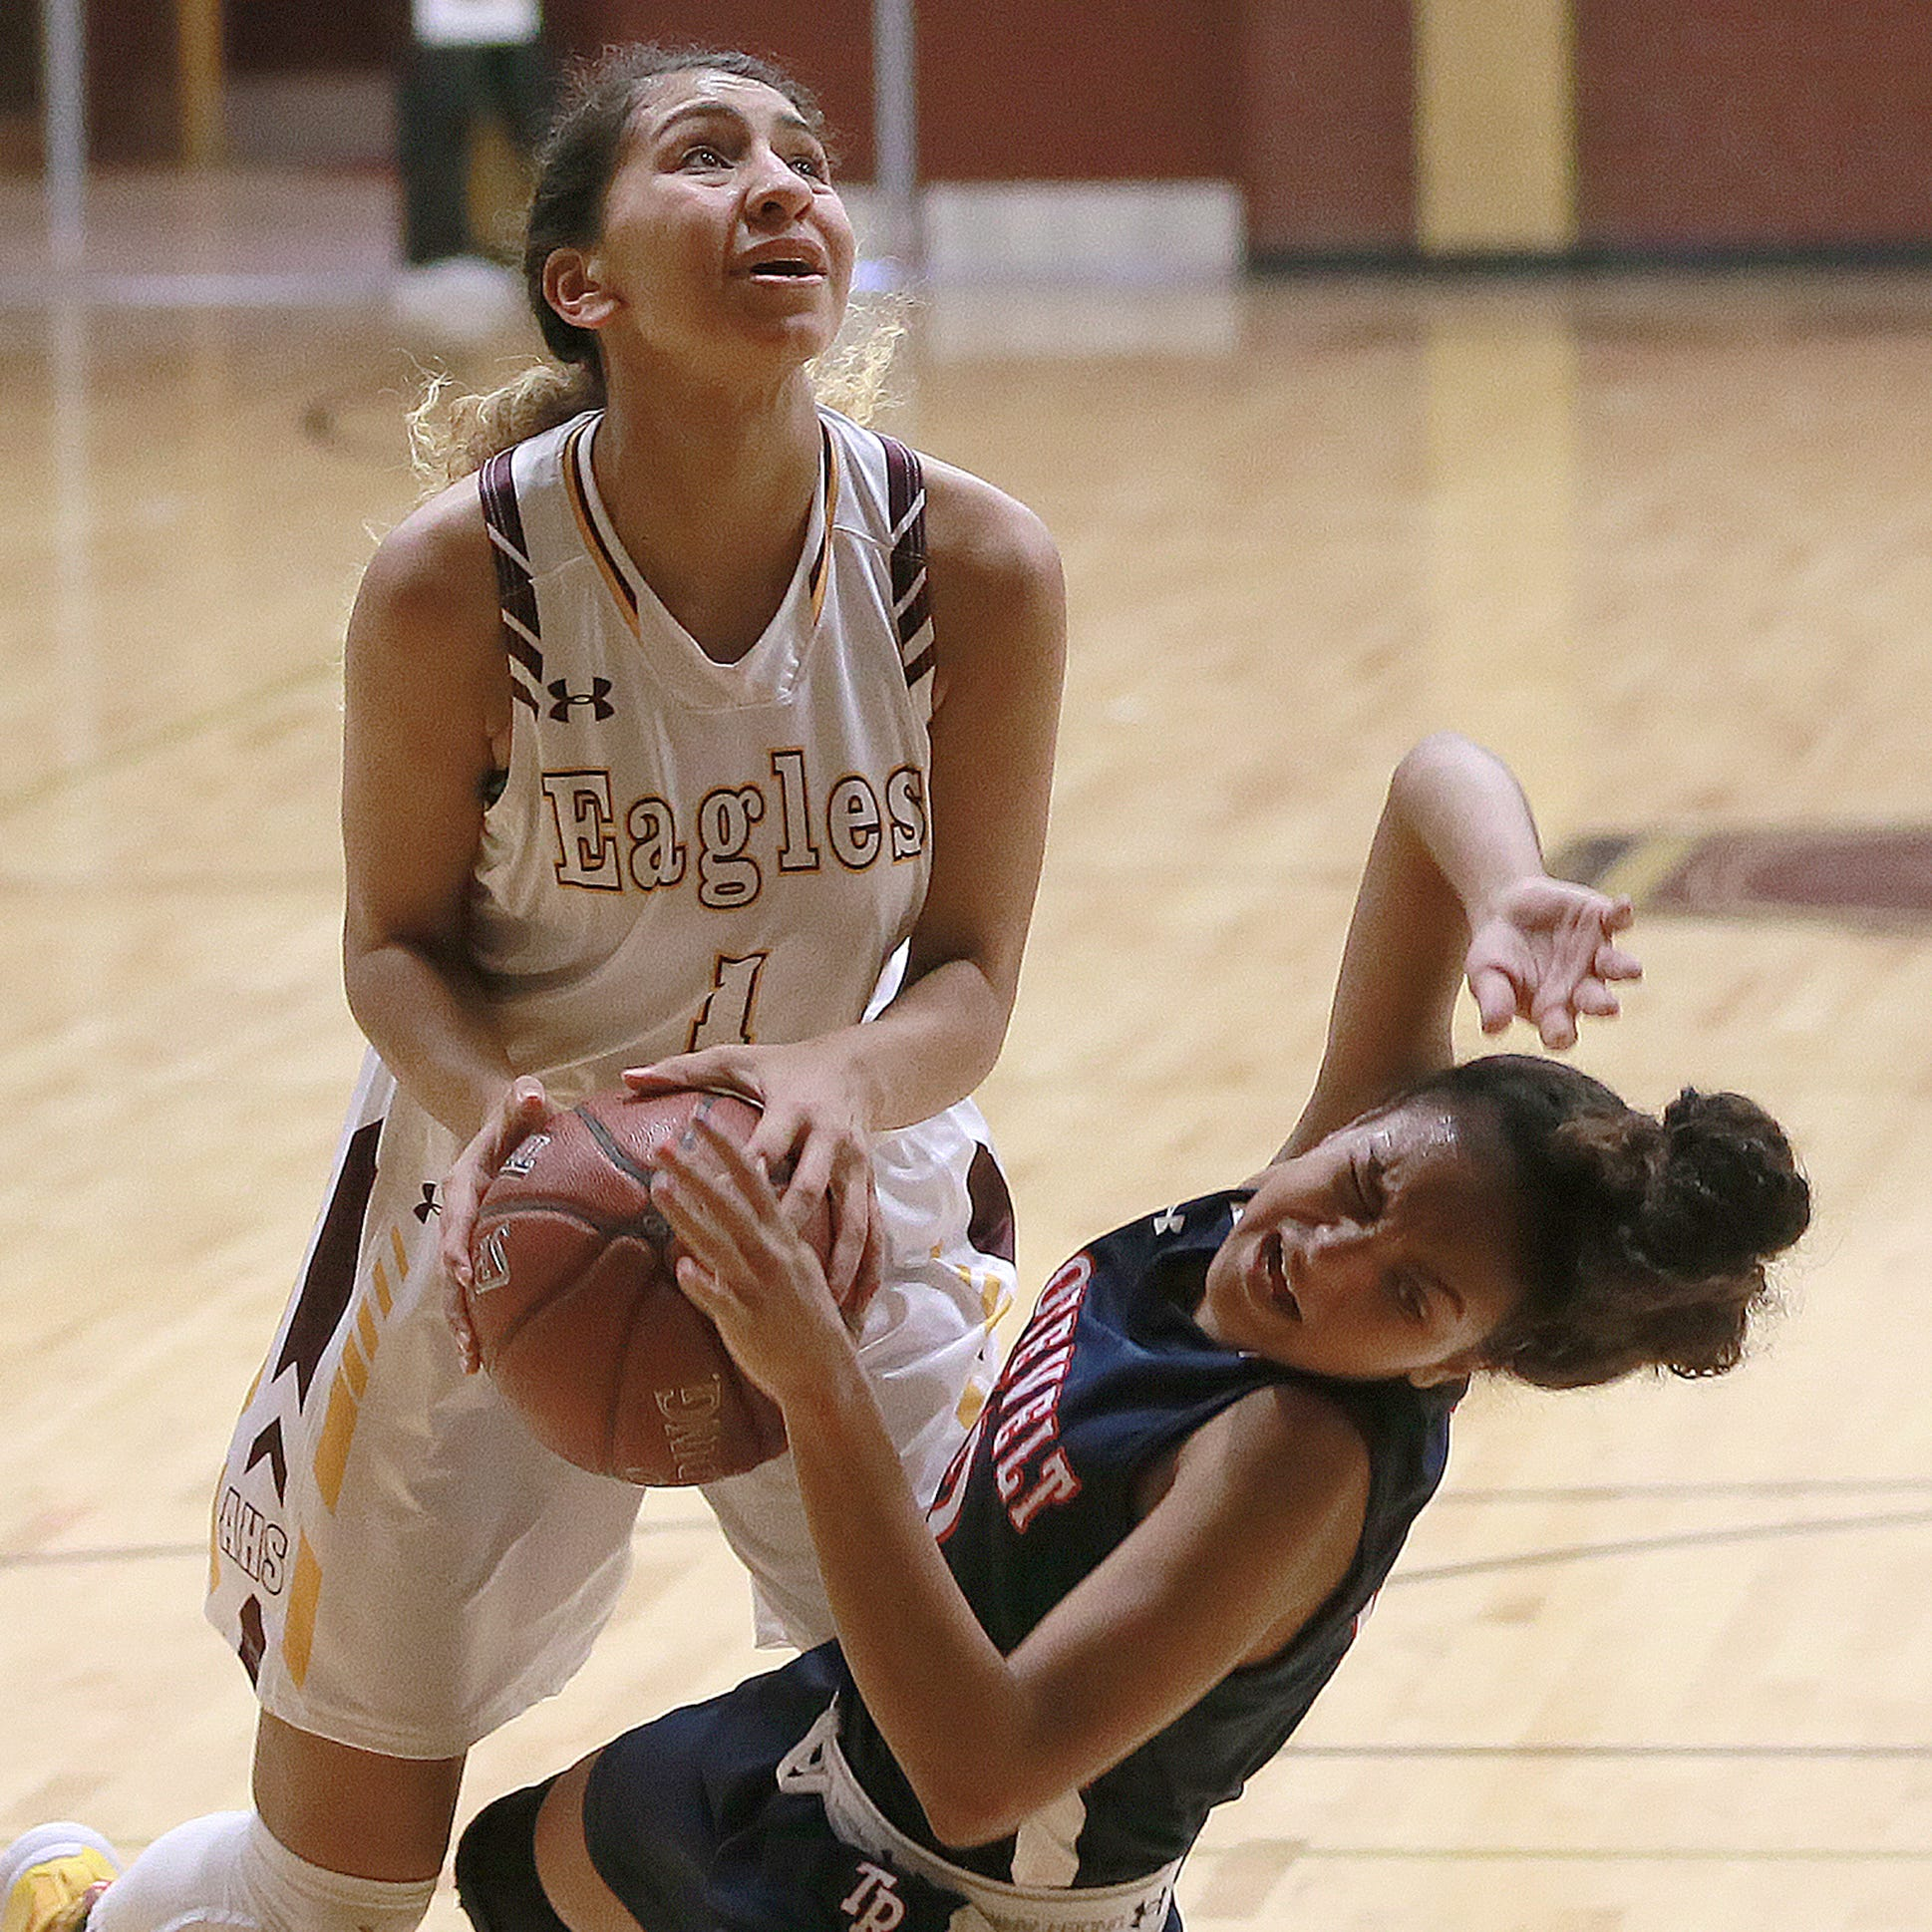 Andress defeated San Antonio Roosevelt in the McDonald's Basketball Classic, 54-20.